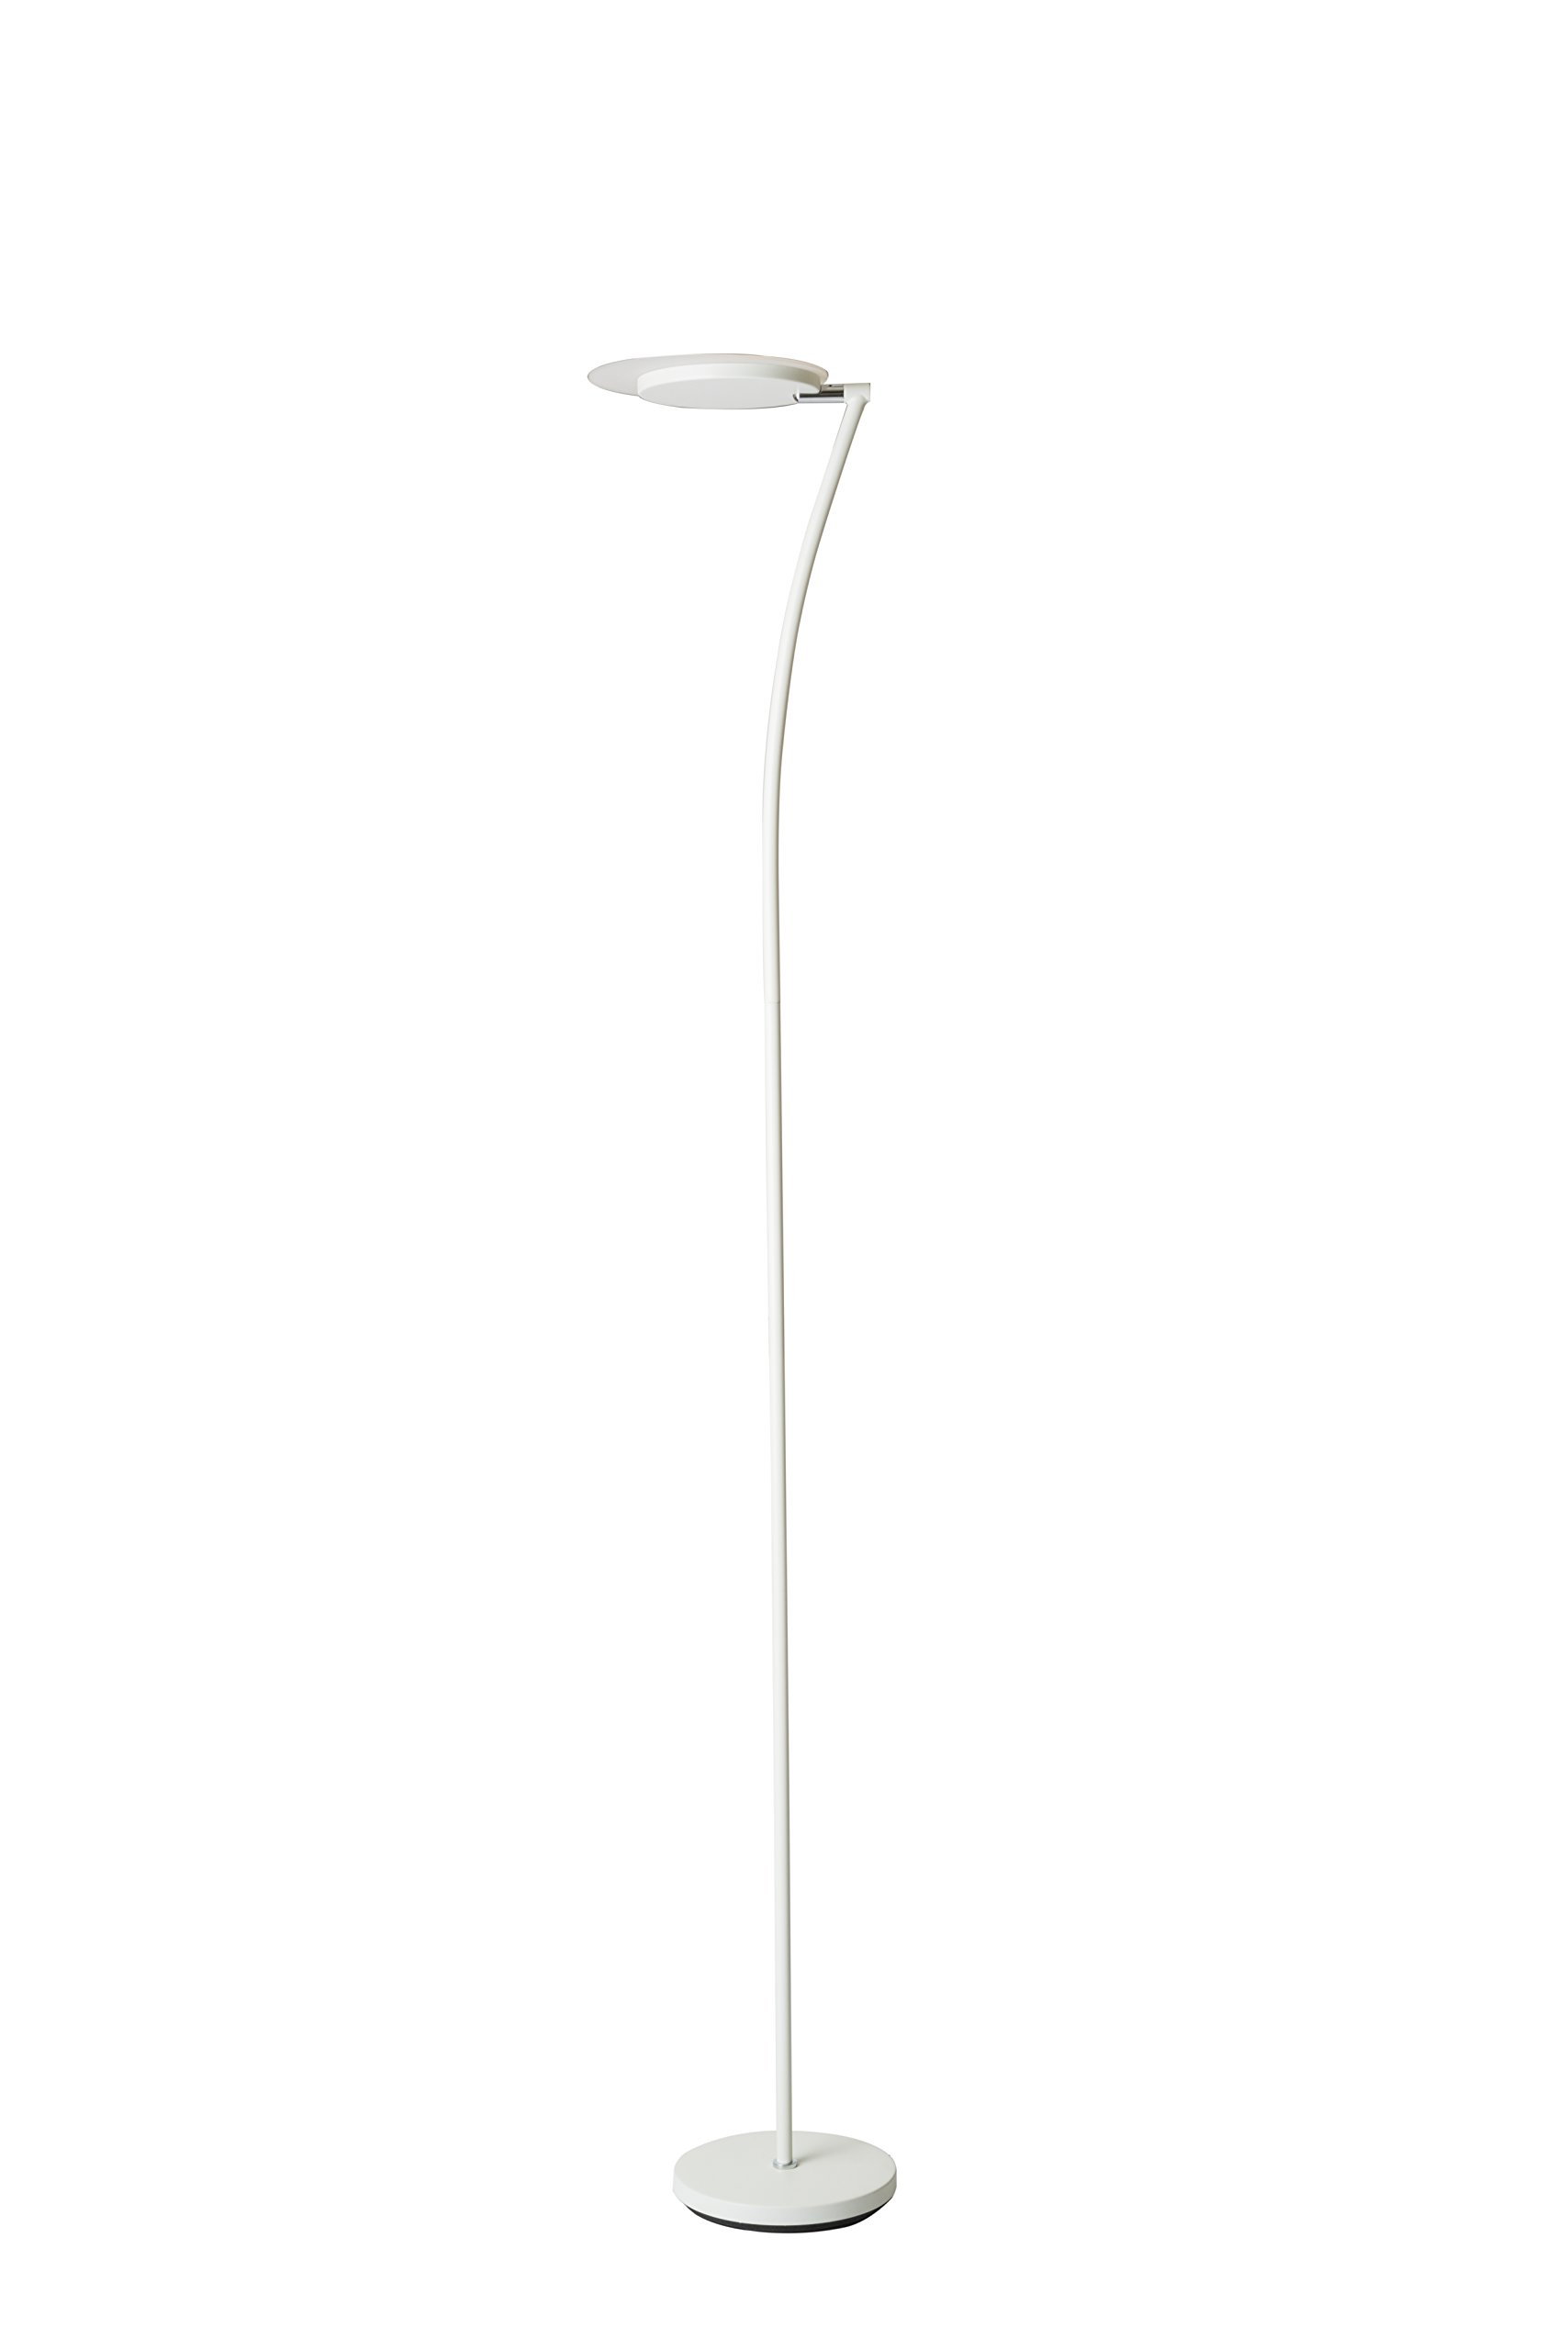 73'' Tall Adjustable Metal Torchiere Floor LED Lamp, Matte White finish